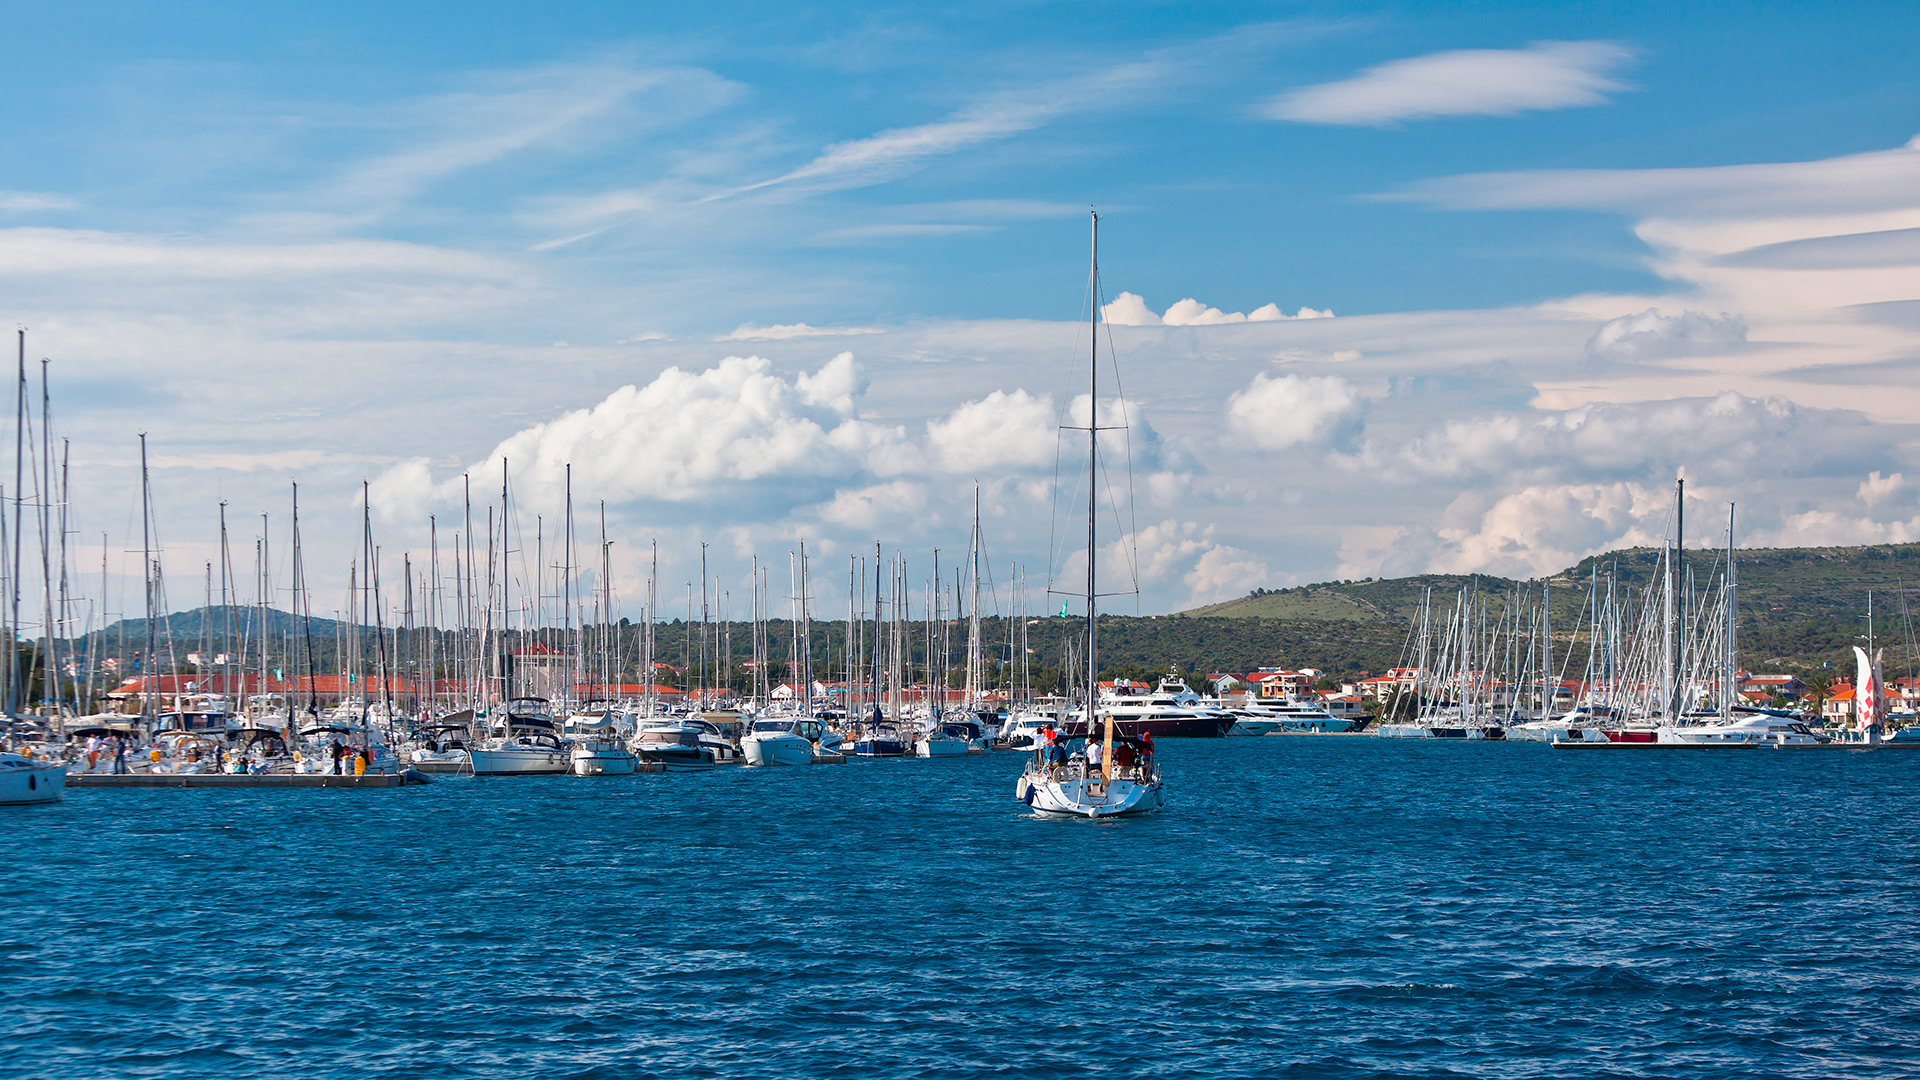 View of the city marina from the sea, Rogoznica, Croatia